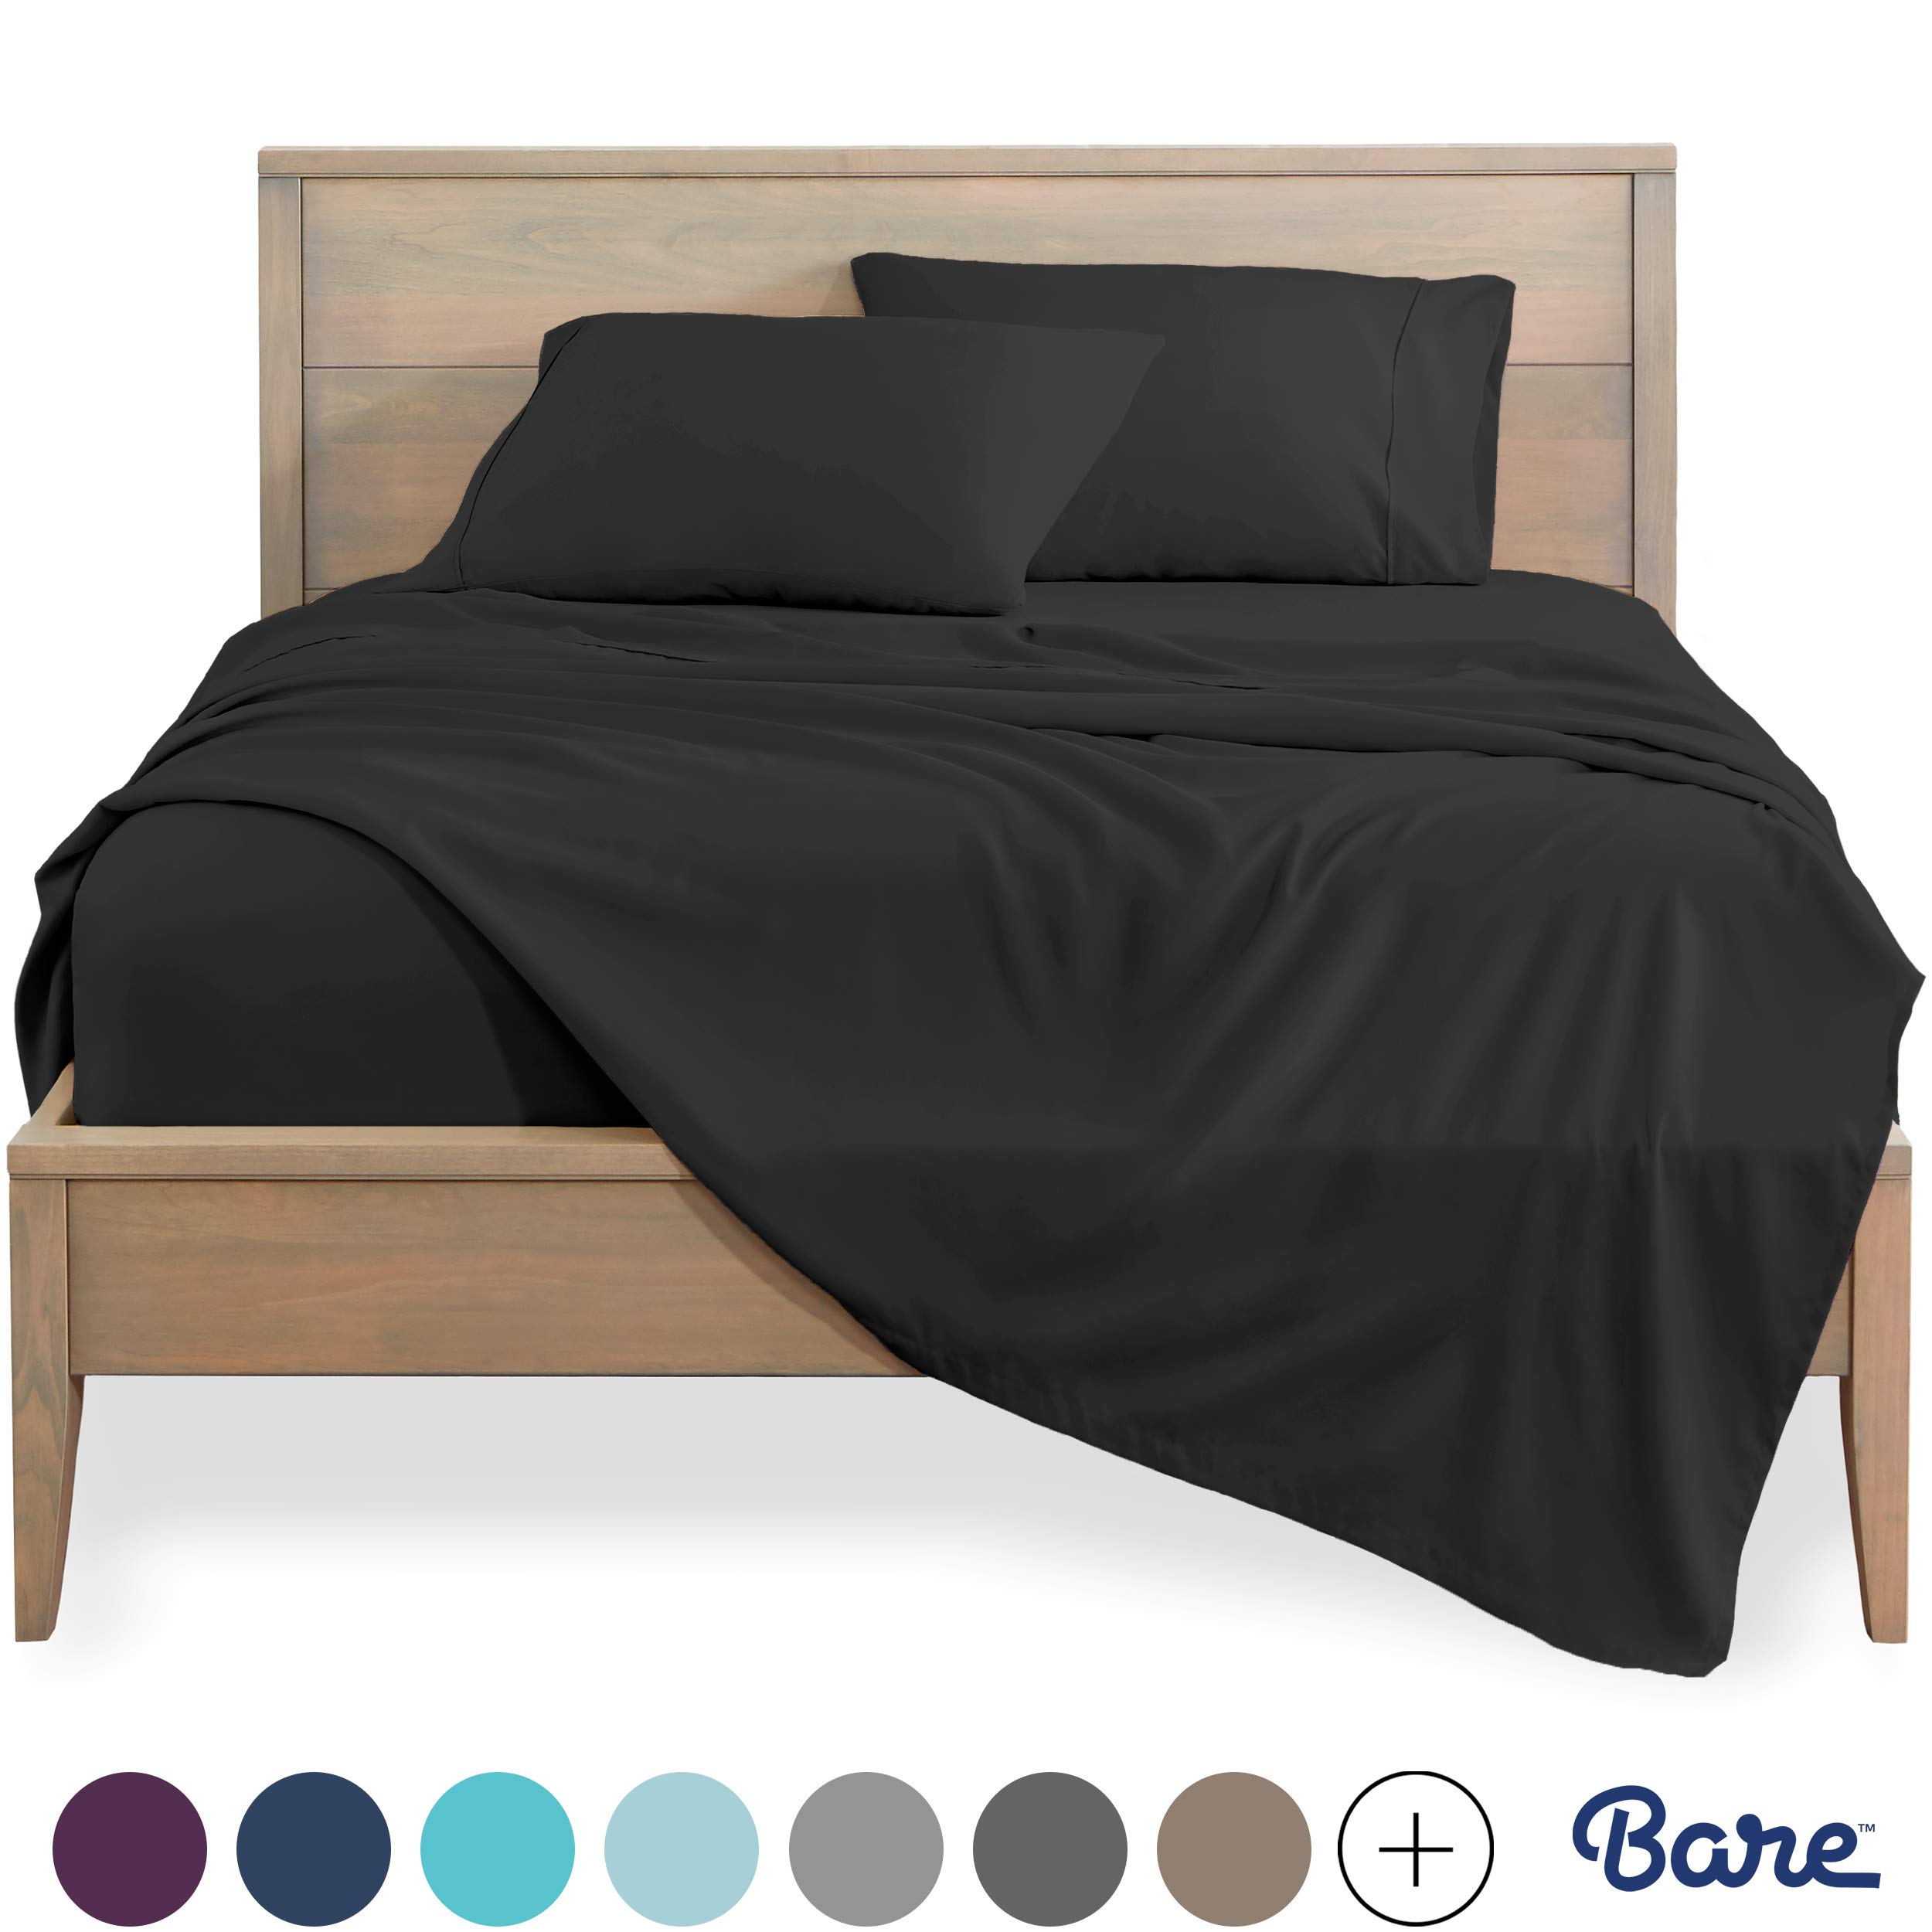 Bare Home California King Sheet Set 1800 Ultra Soft Microfiber Bed Sheets Double Brushed Breathable Bedding Hypoallergenic Wrinkle Resistant Deep Pocket Cal King Charcoal